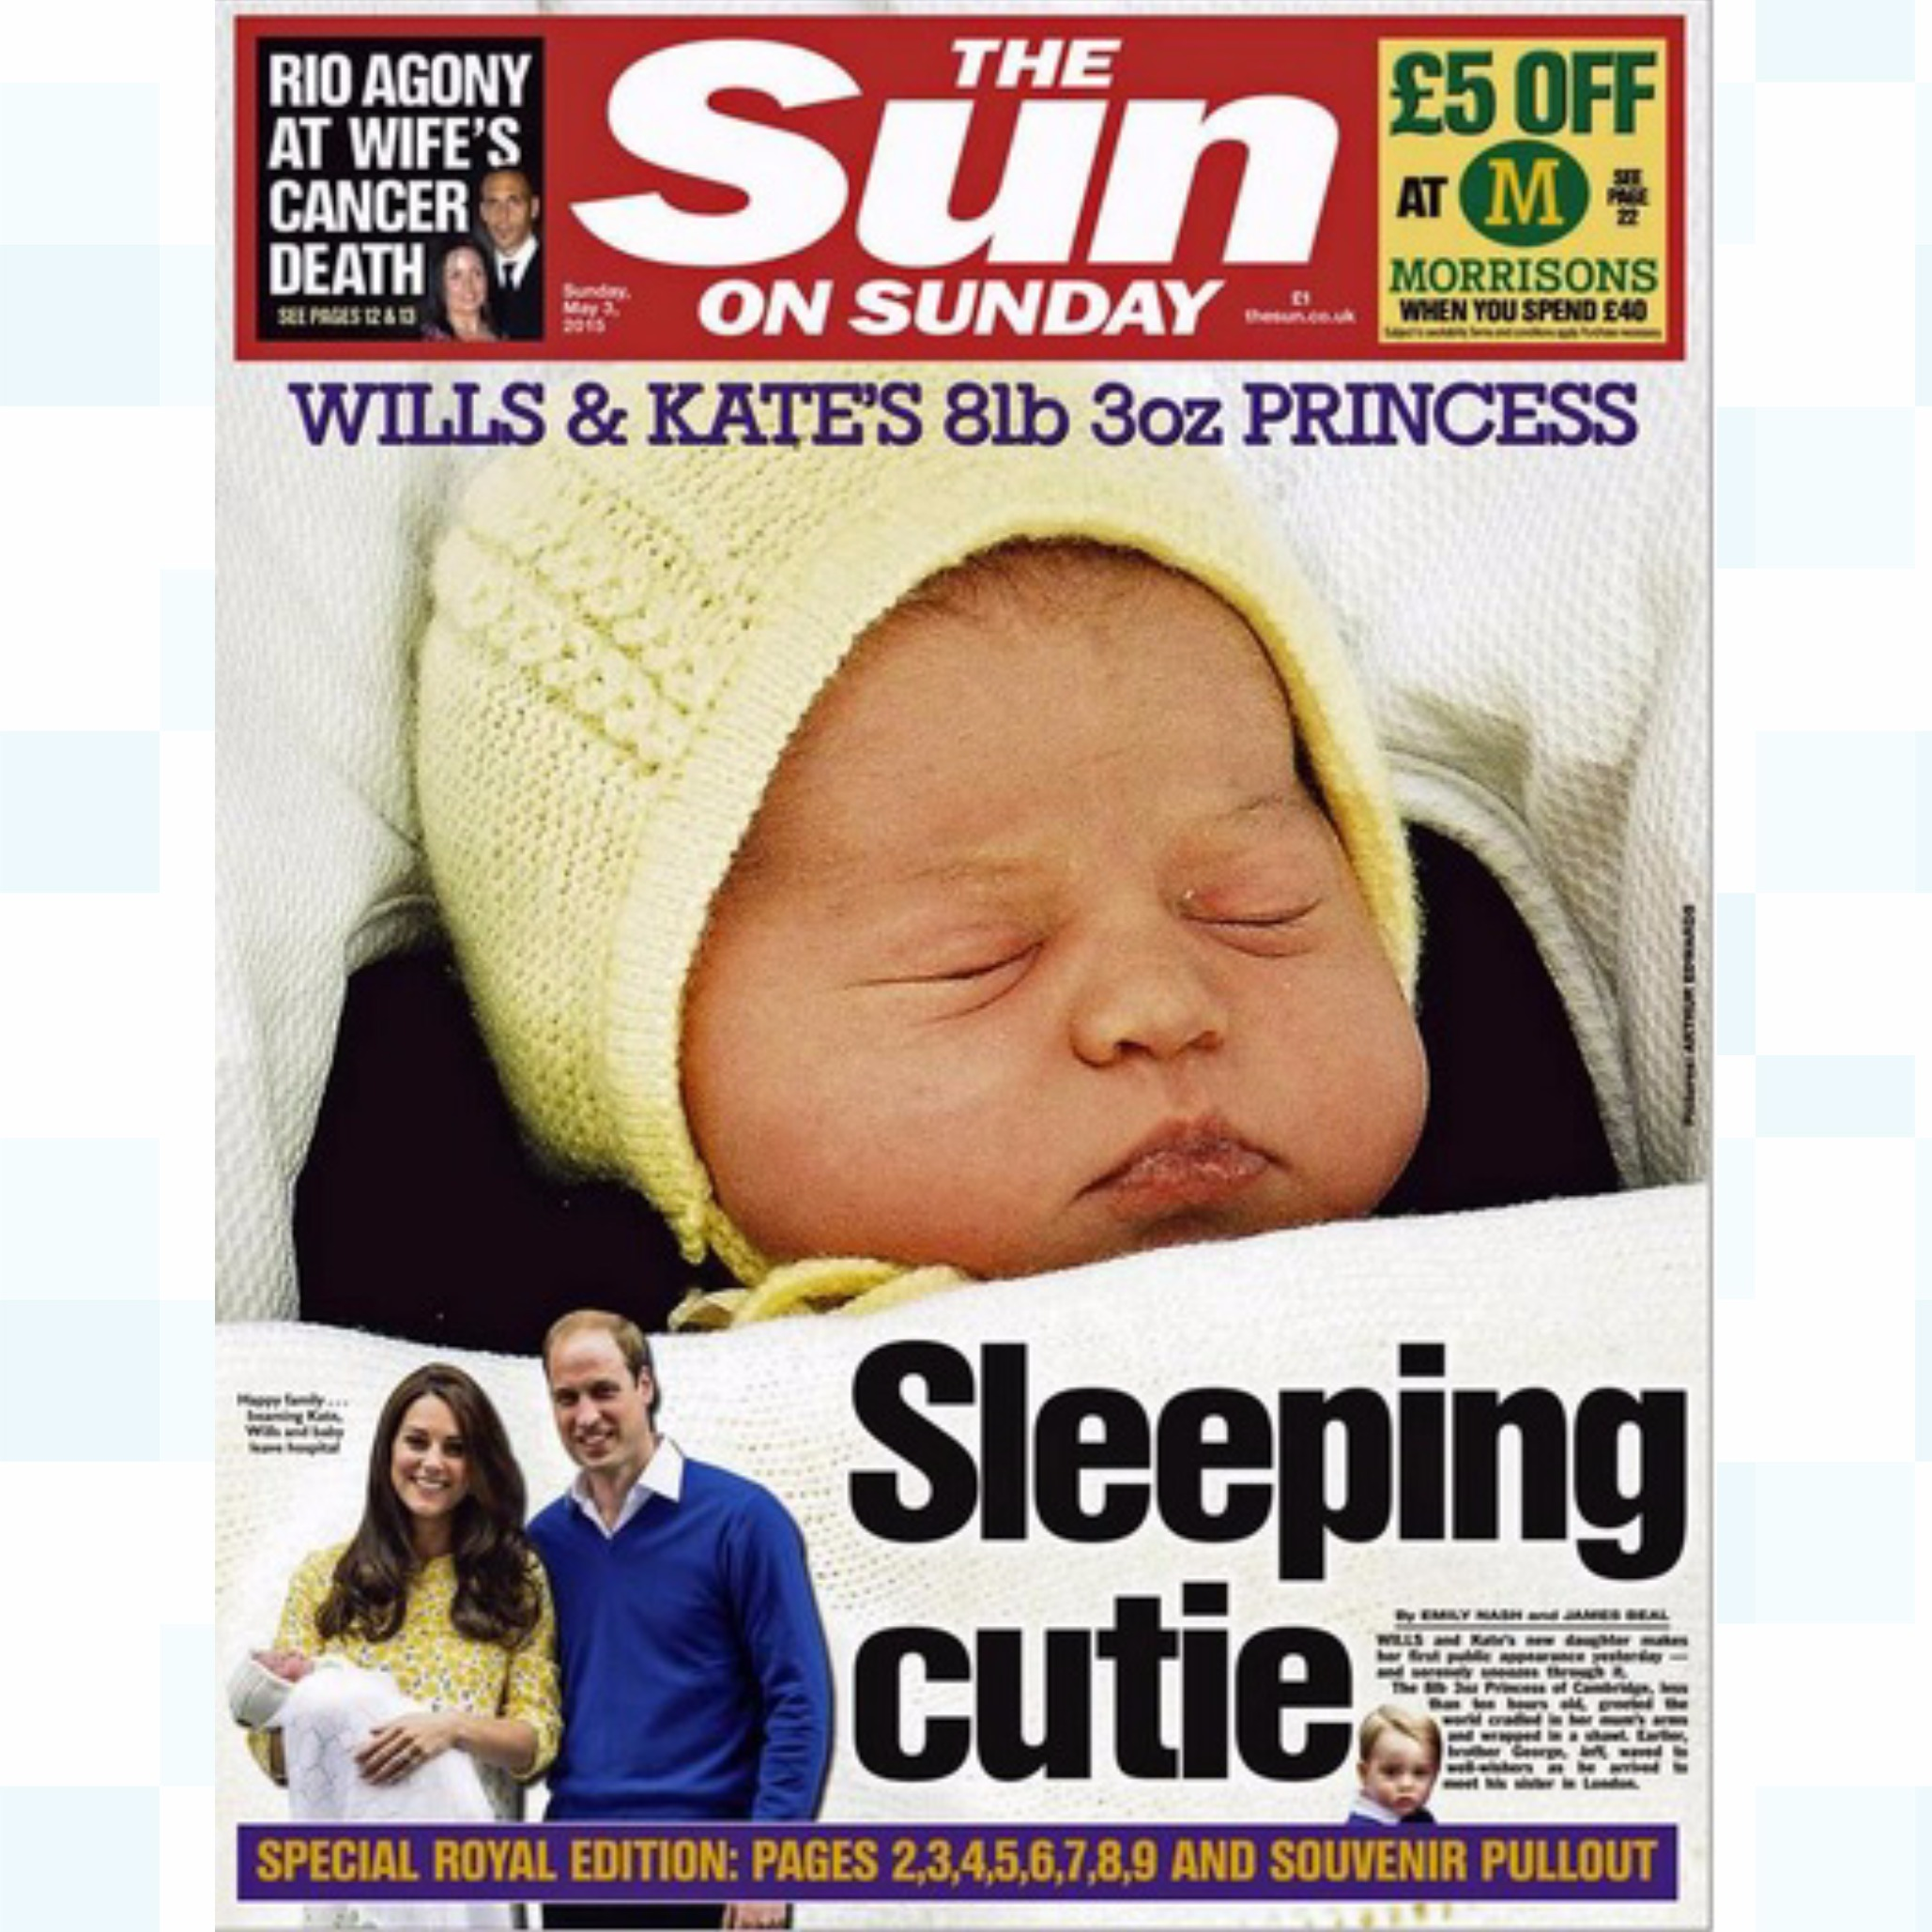 The Princess And The Papers: Royal Birth Dominates The